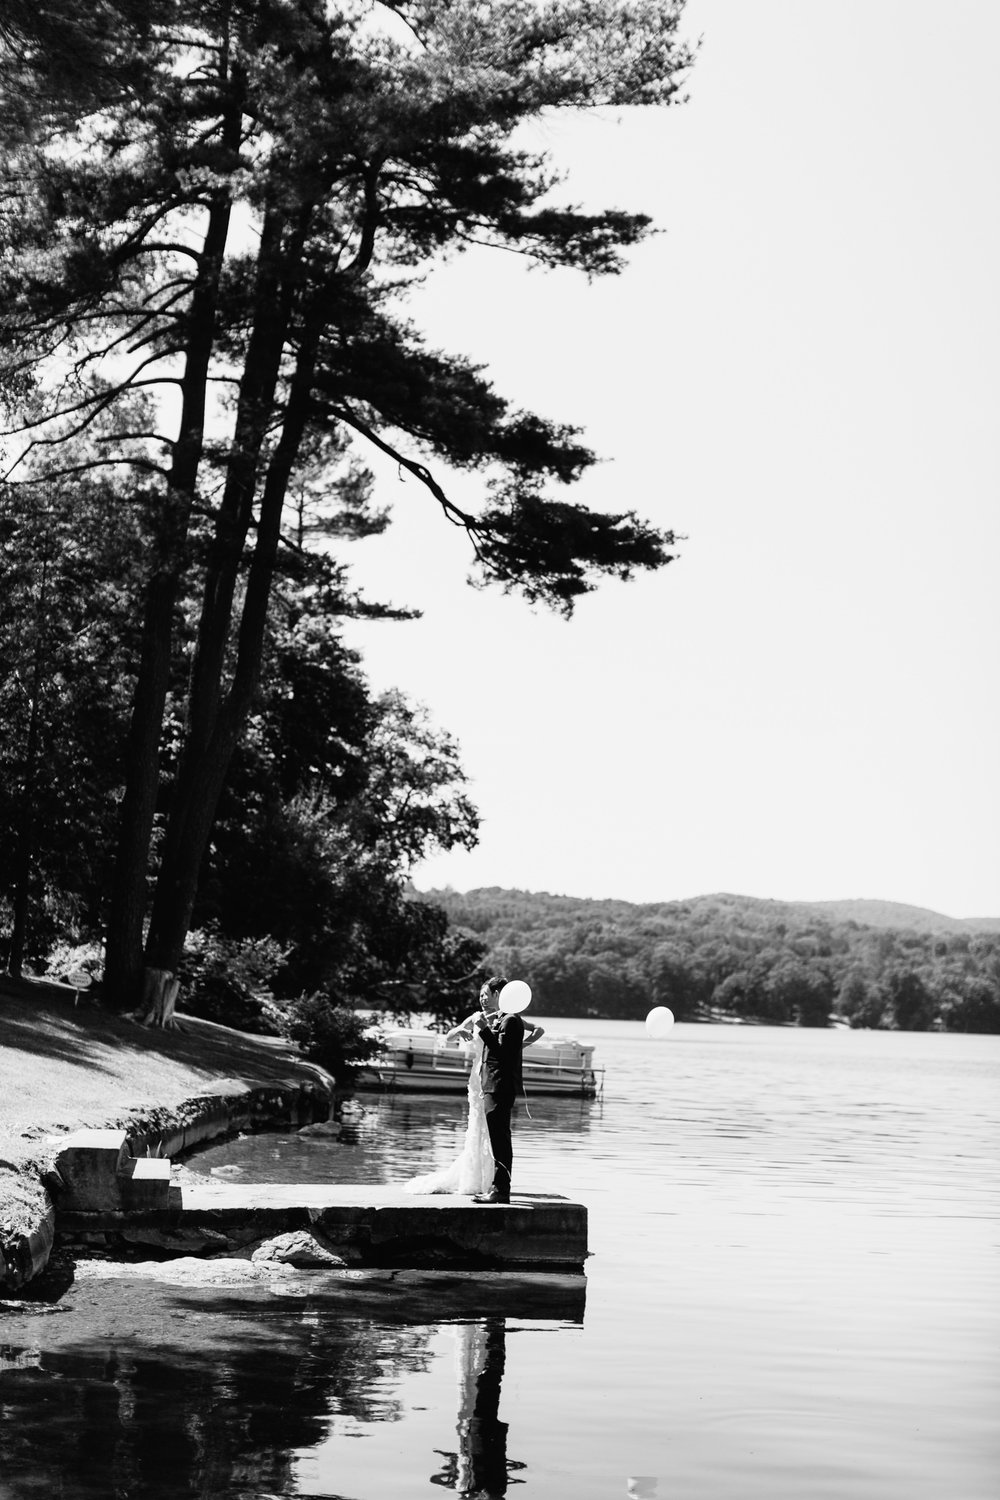 connecticut-summer-lake-wedding-emily-kirke-photography-upstyle (64 of 181).jpg